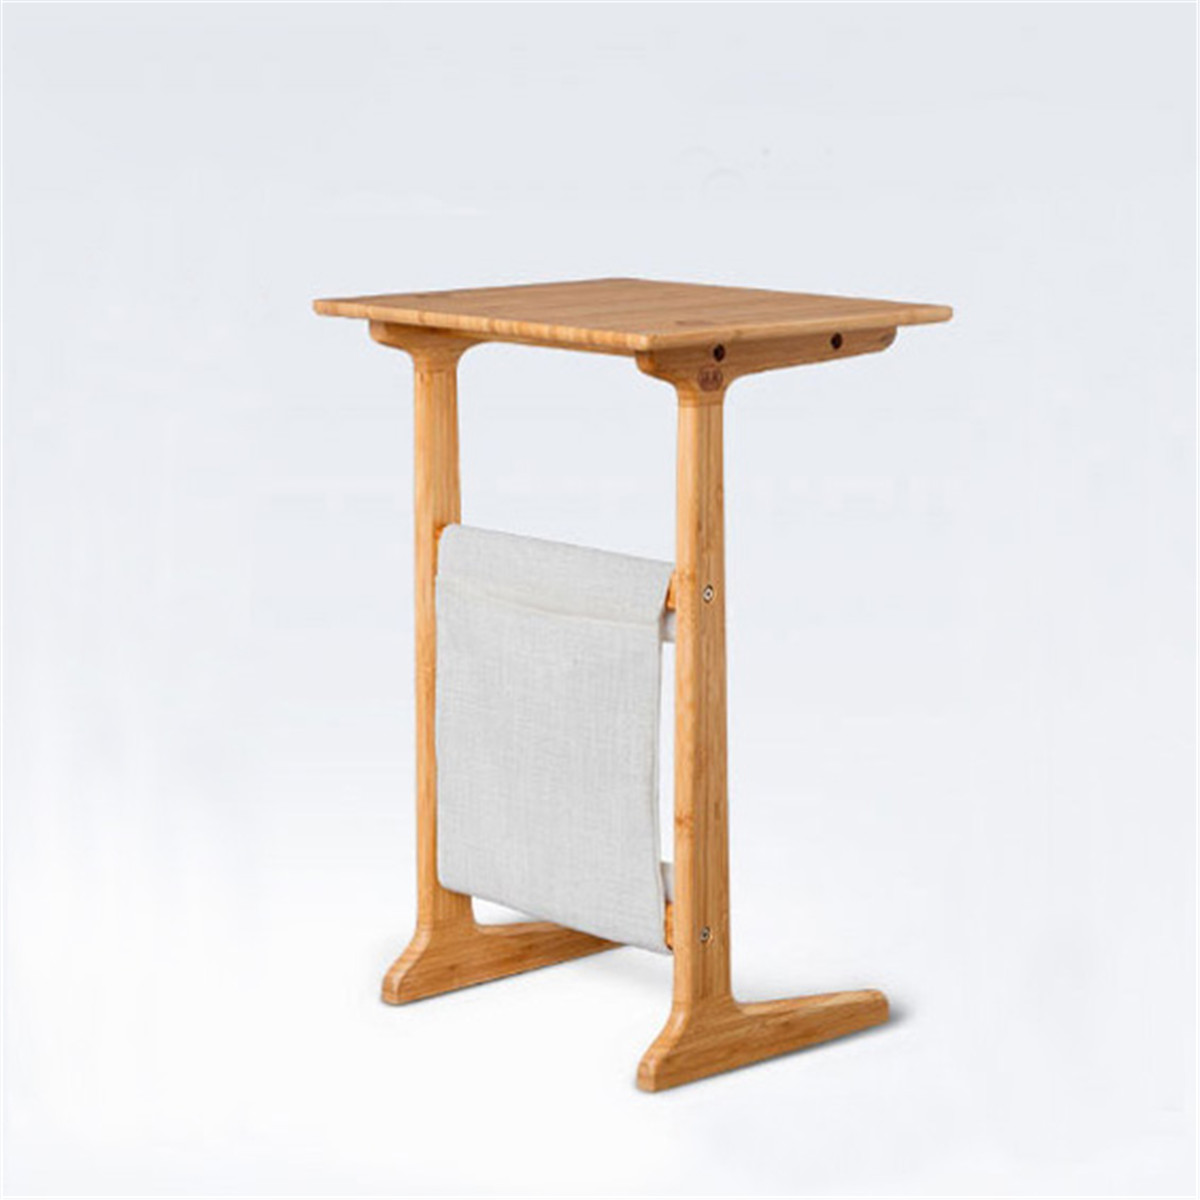 Multi functional sofa side tray table simple modern for Functional side table